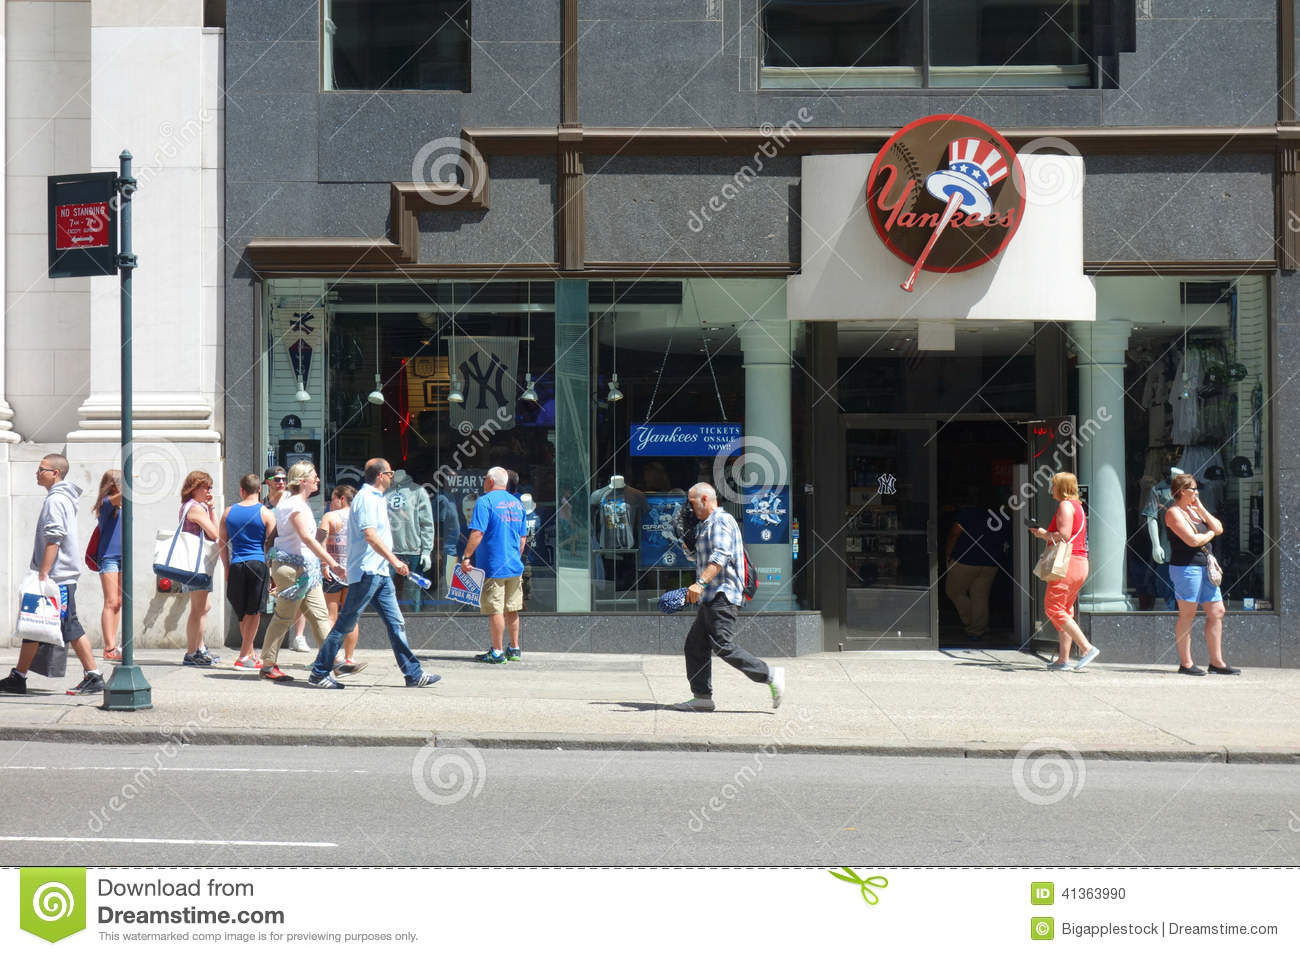 A store on Fifth Avenue that sells merchandise related to the New York  Yankees d7871a52e4c